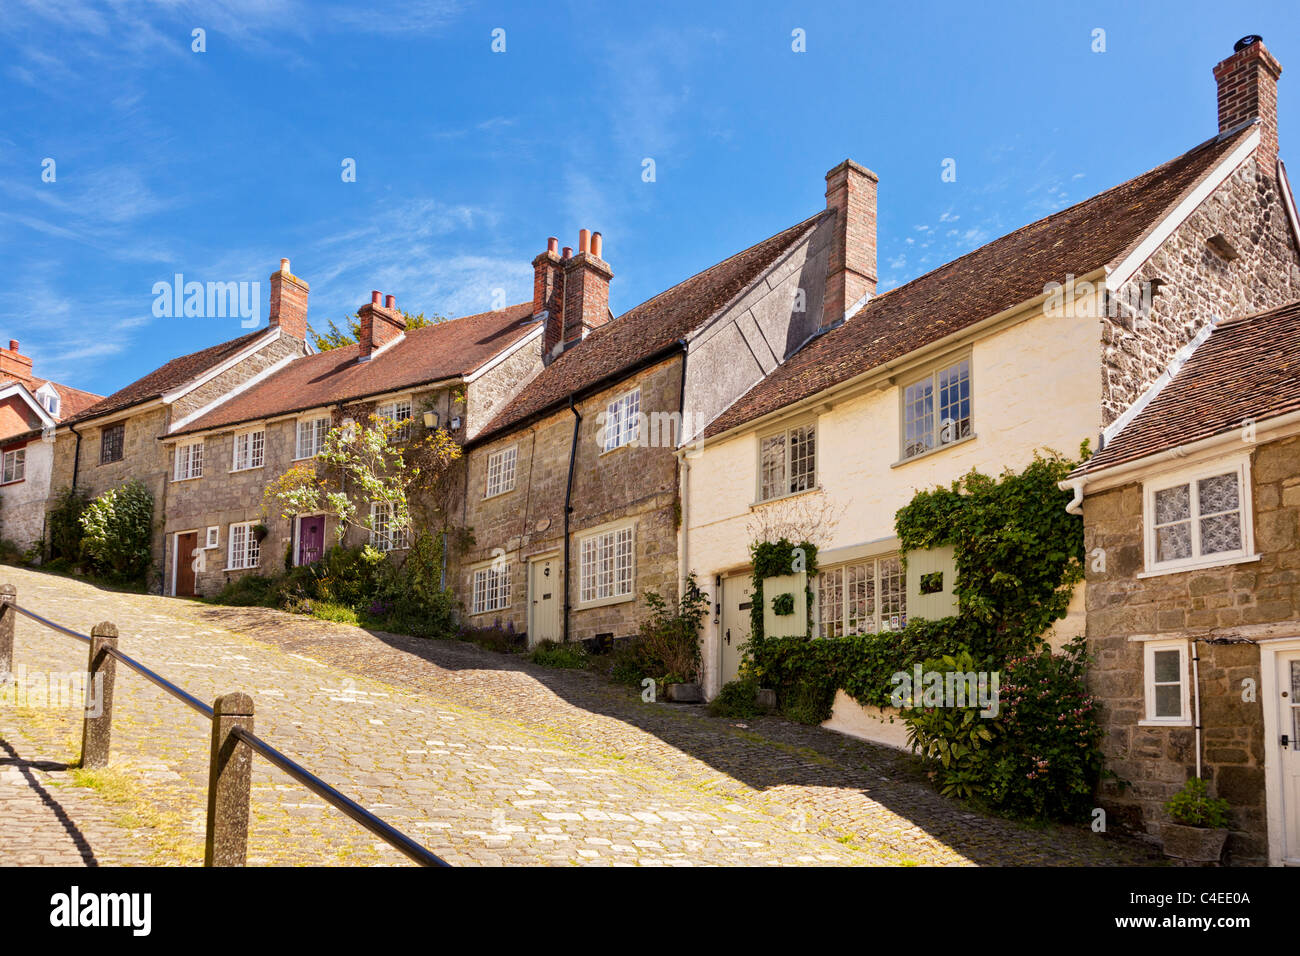 Traditional English houses on Gold Hill, Shaftesbury, Dorset, England, UK - viewed from bottom of street - Stock Image